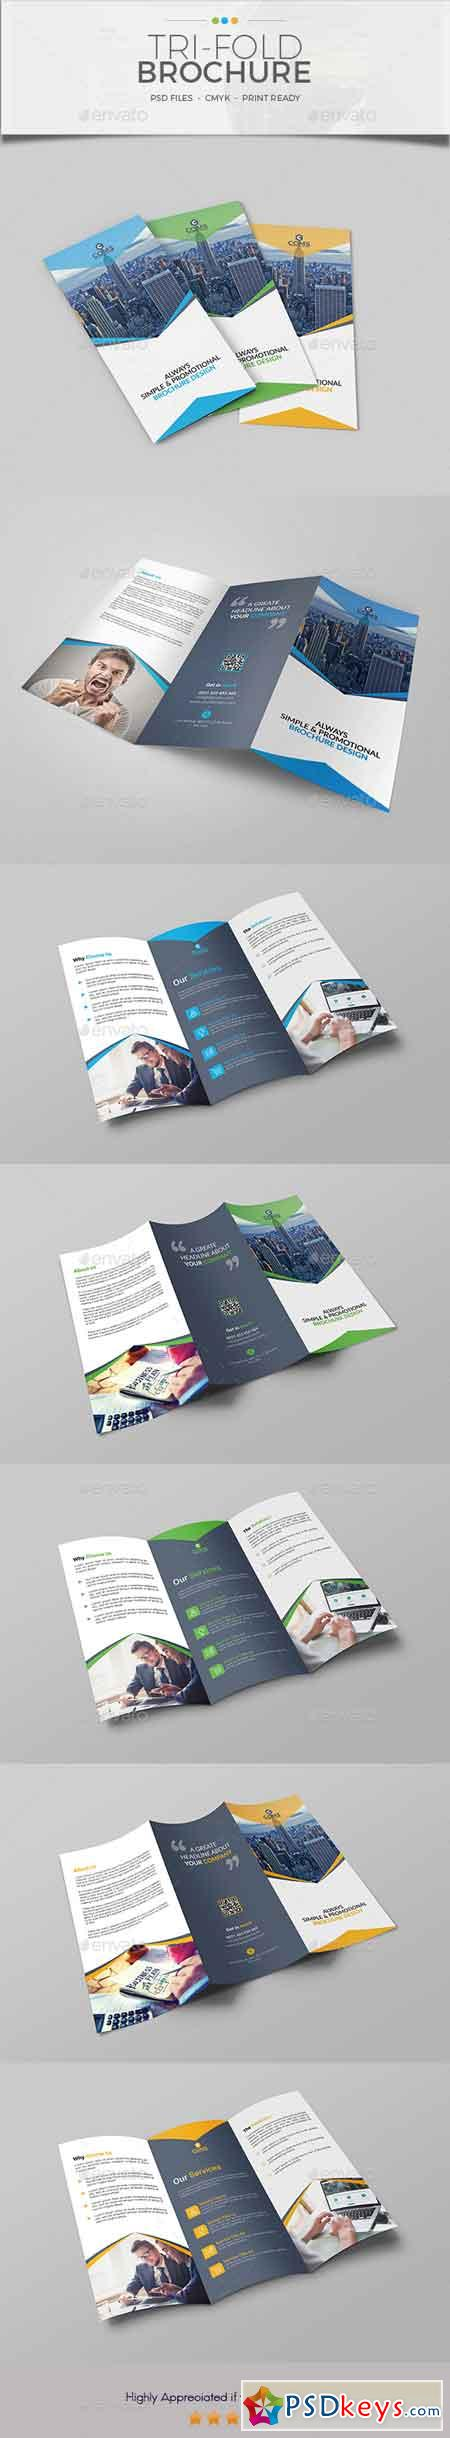 Trifold Brochure Template 15 20658275